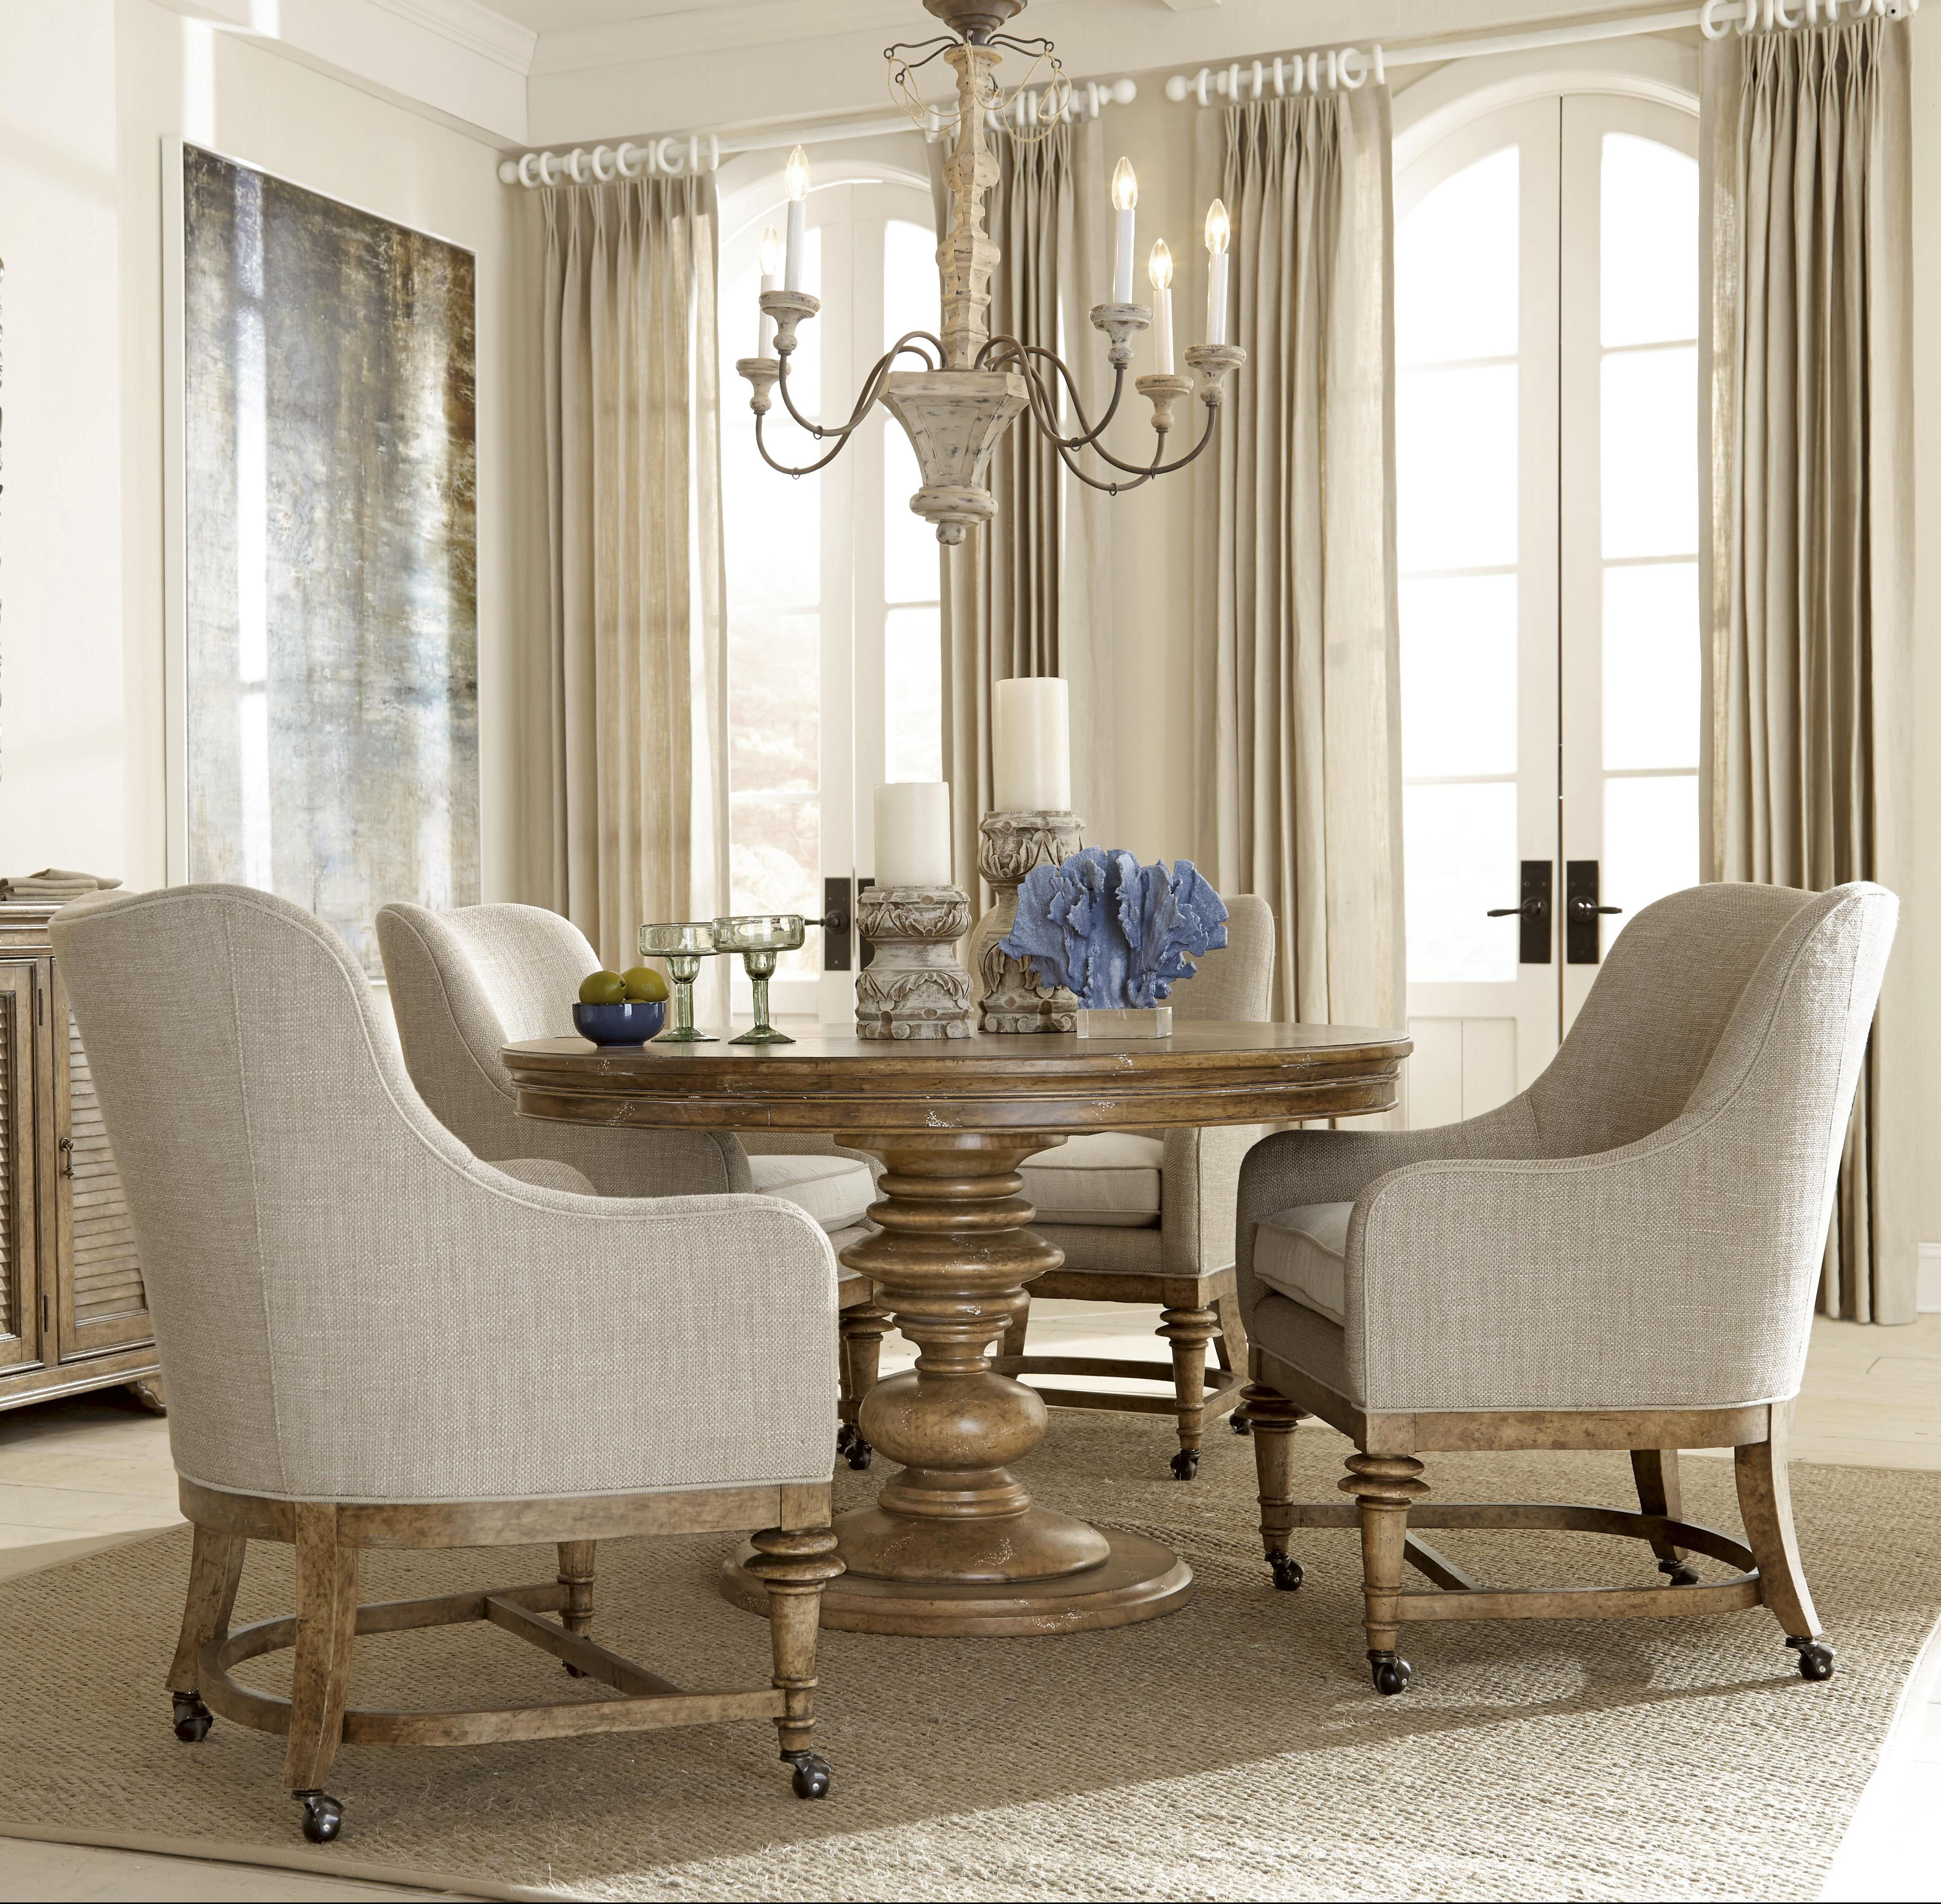 5 Piece Round Table With Party Chairs